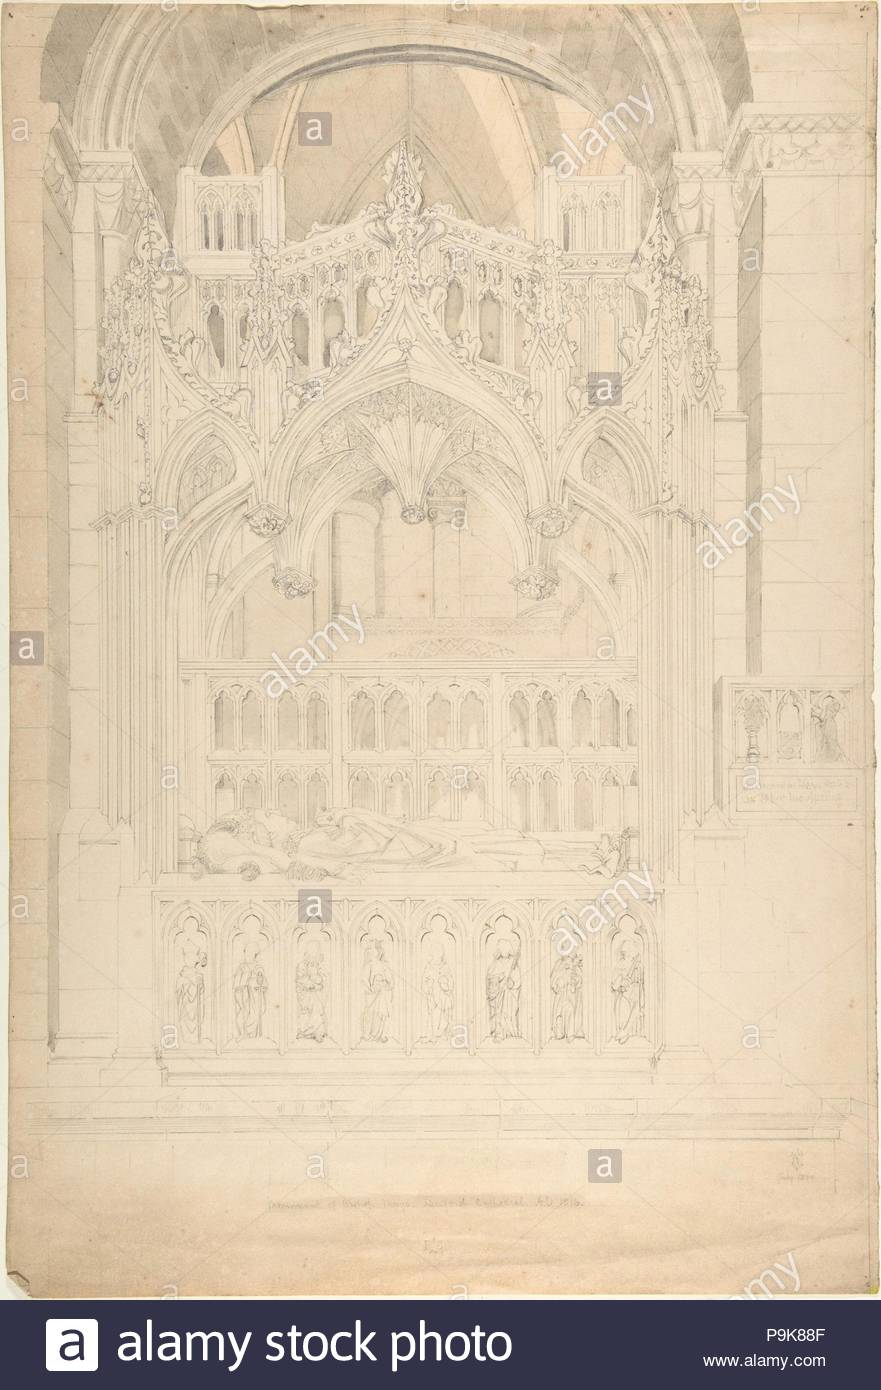 Monument of Bishop Mays, Hereford Castle AD1516, 19th century, Ink and wash over graphite, sheet: 19 1/2 x 13 in. (49.5 x 33 cm), Attributed to Sir Charles Barry (British, London 1795–1860 London). - Stock Image